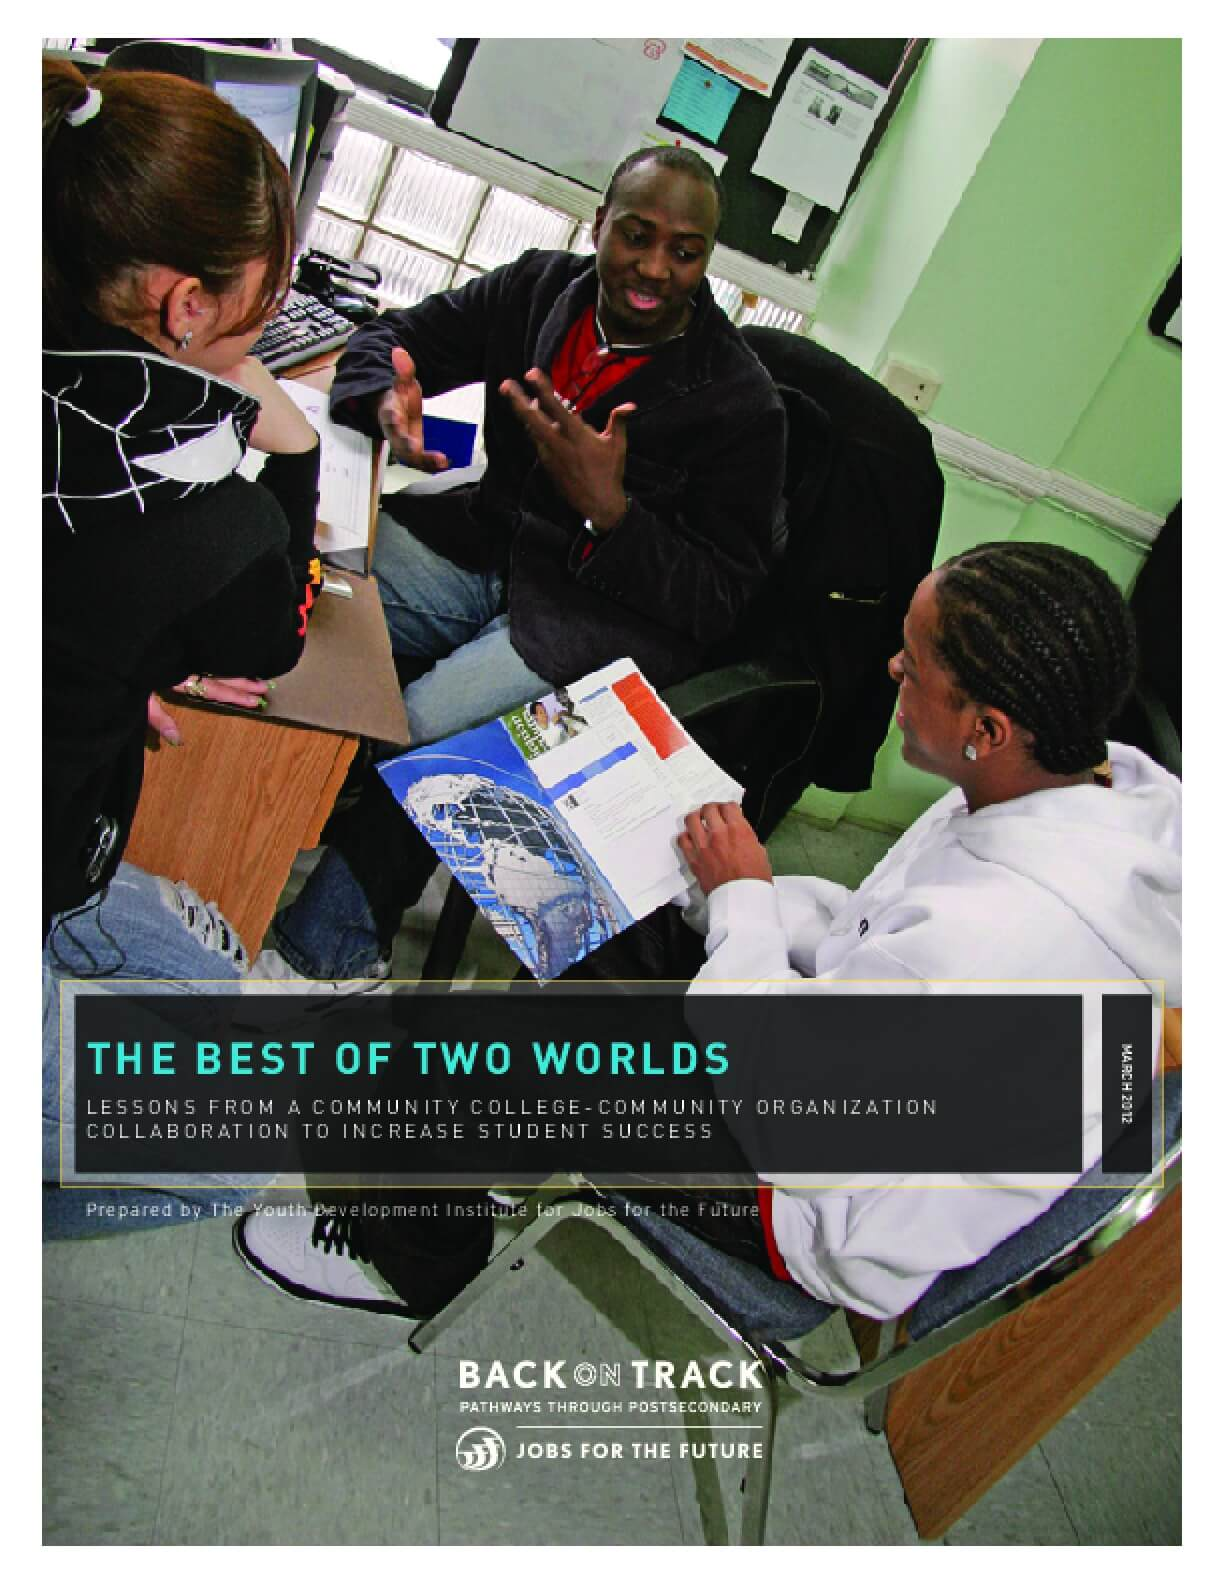 The Best of Two Worlds: Lessons from a Community College-Community Organization Collaboration to Increase Student Success